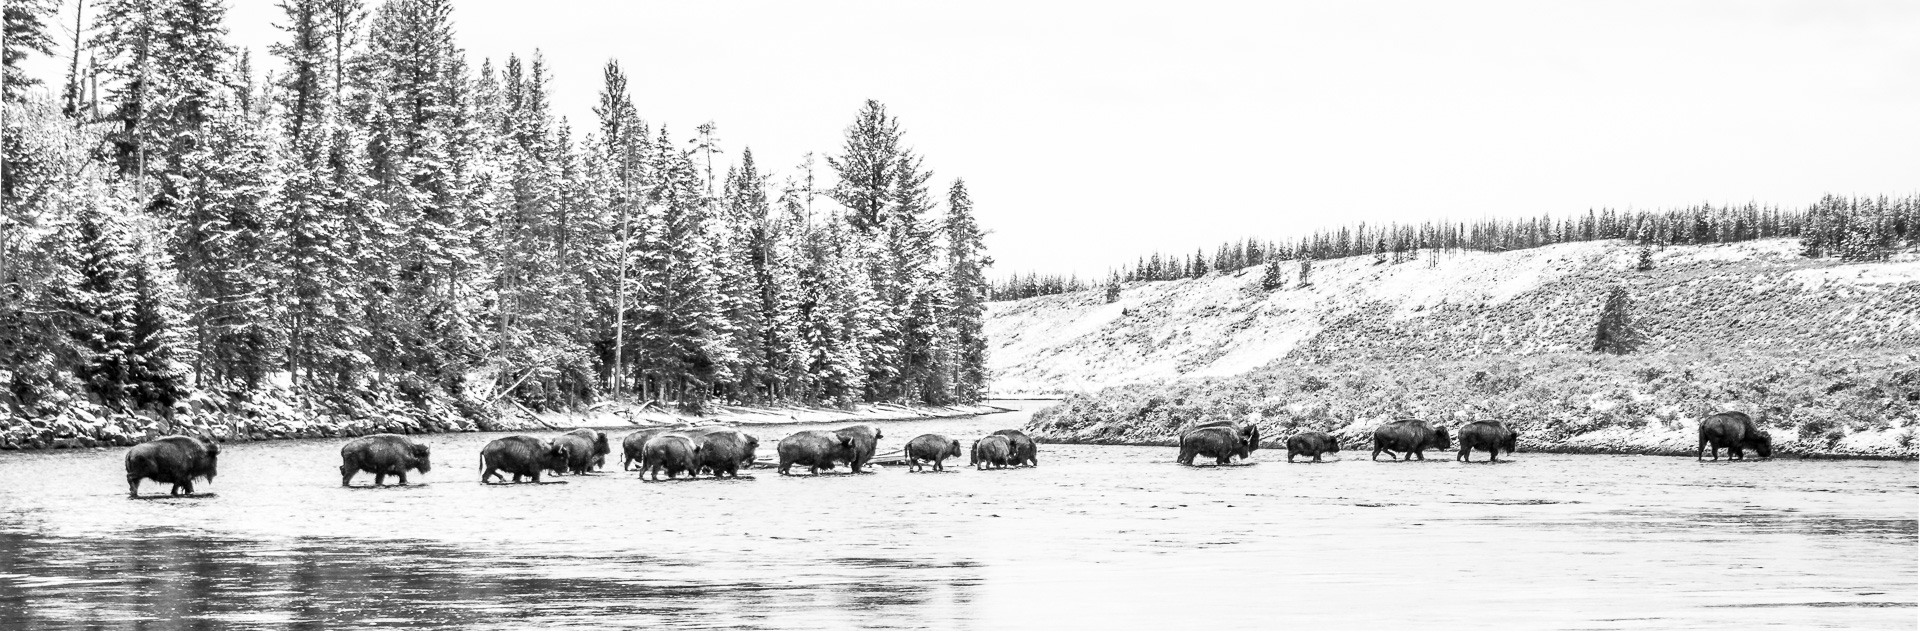 Bison herd crossing B&W Madison River Yellowstone National Park WY -05215